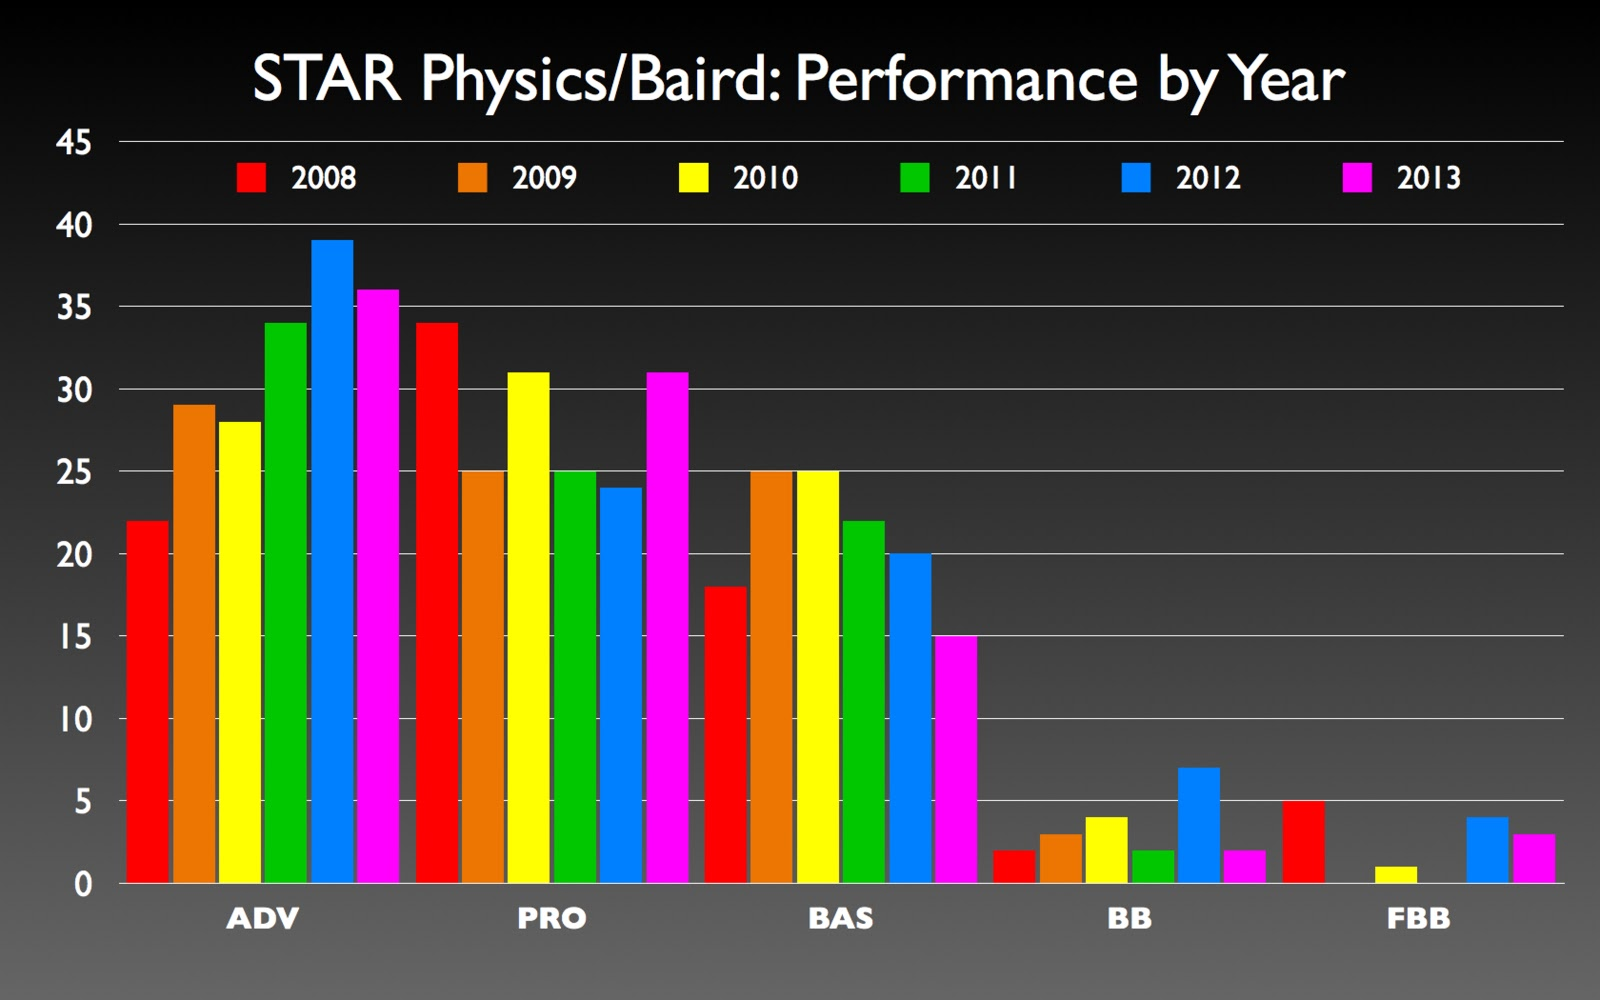 The Blog Of Phyz 2013 Doc Phet Dc Circuit Lab Parallel Bulbs This Analysis Leaves Something To Be Desired Theres Too Much Data See Larger More Important Trends A Telling Chart Compares Good Bad